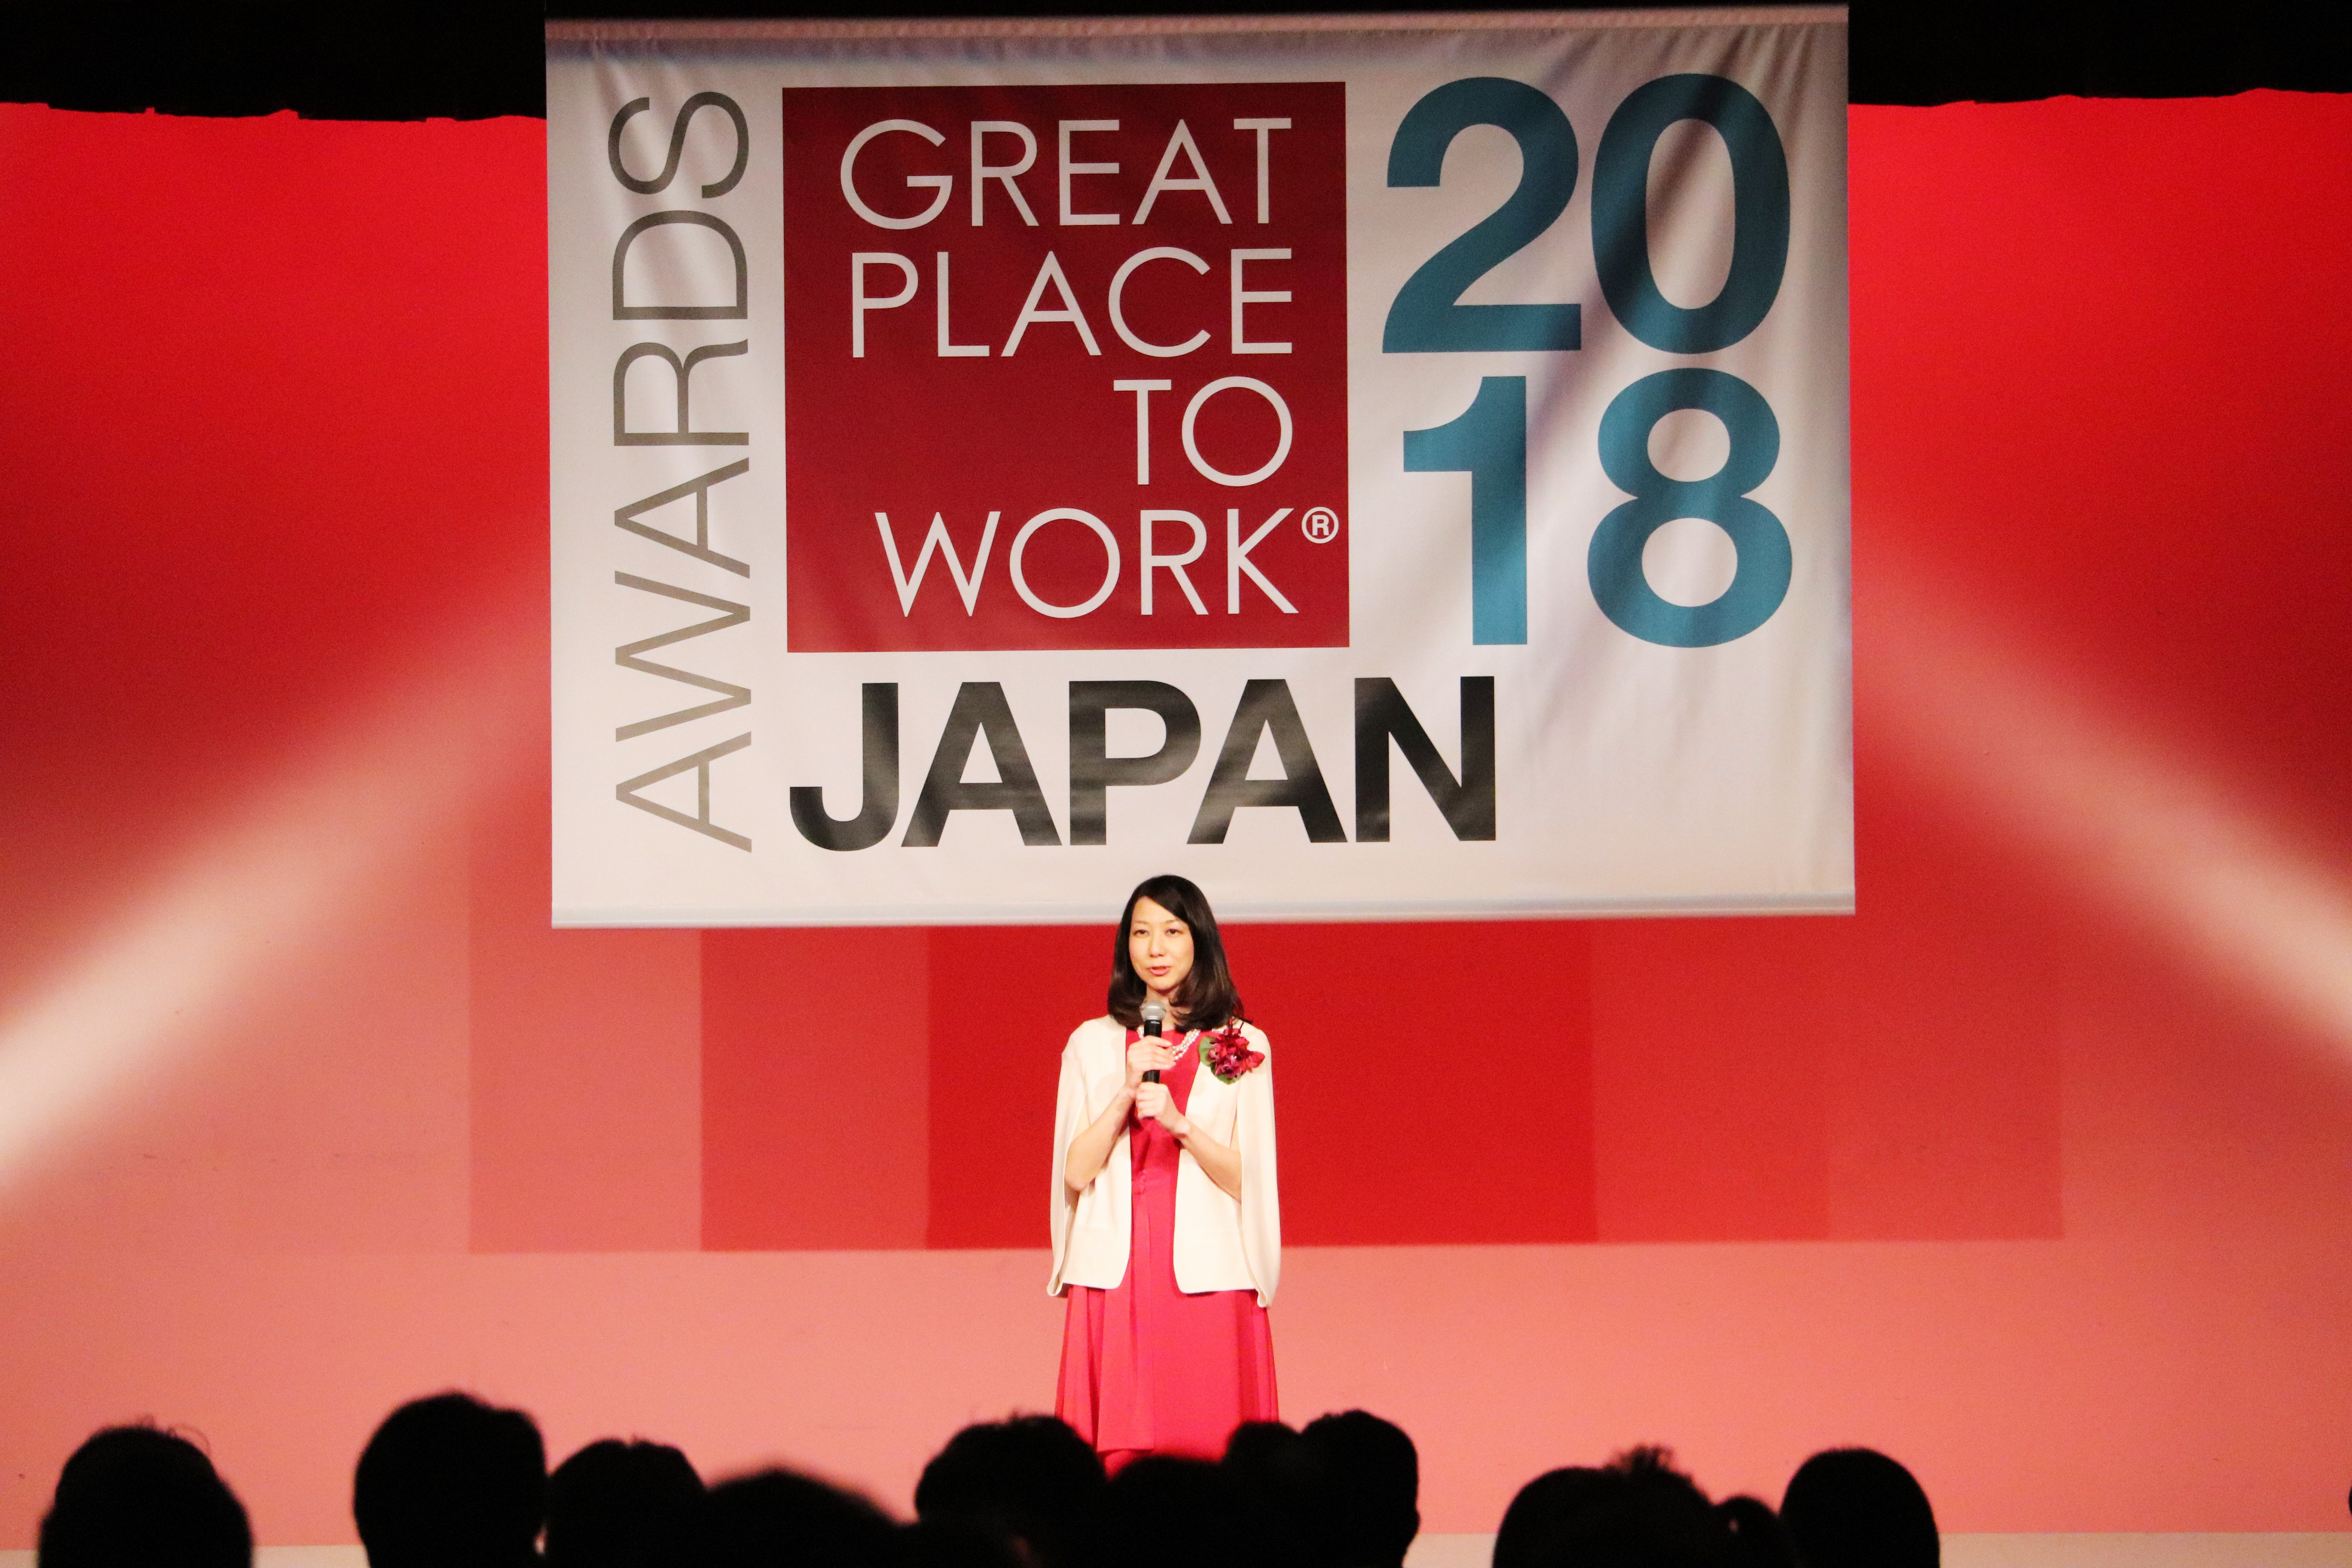 Great Place to Work®Institute Japan代表の岡本さんによる挨拶